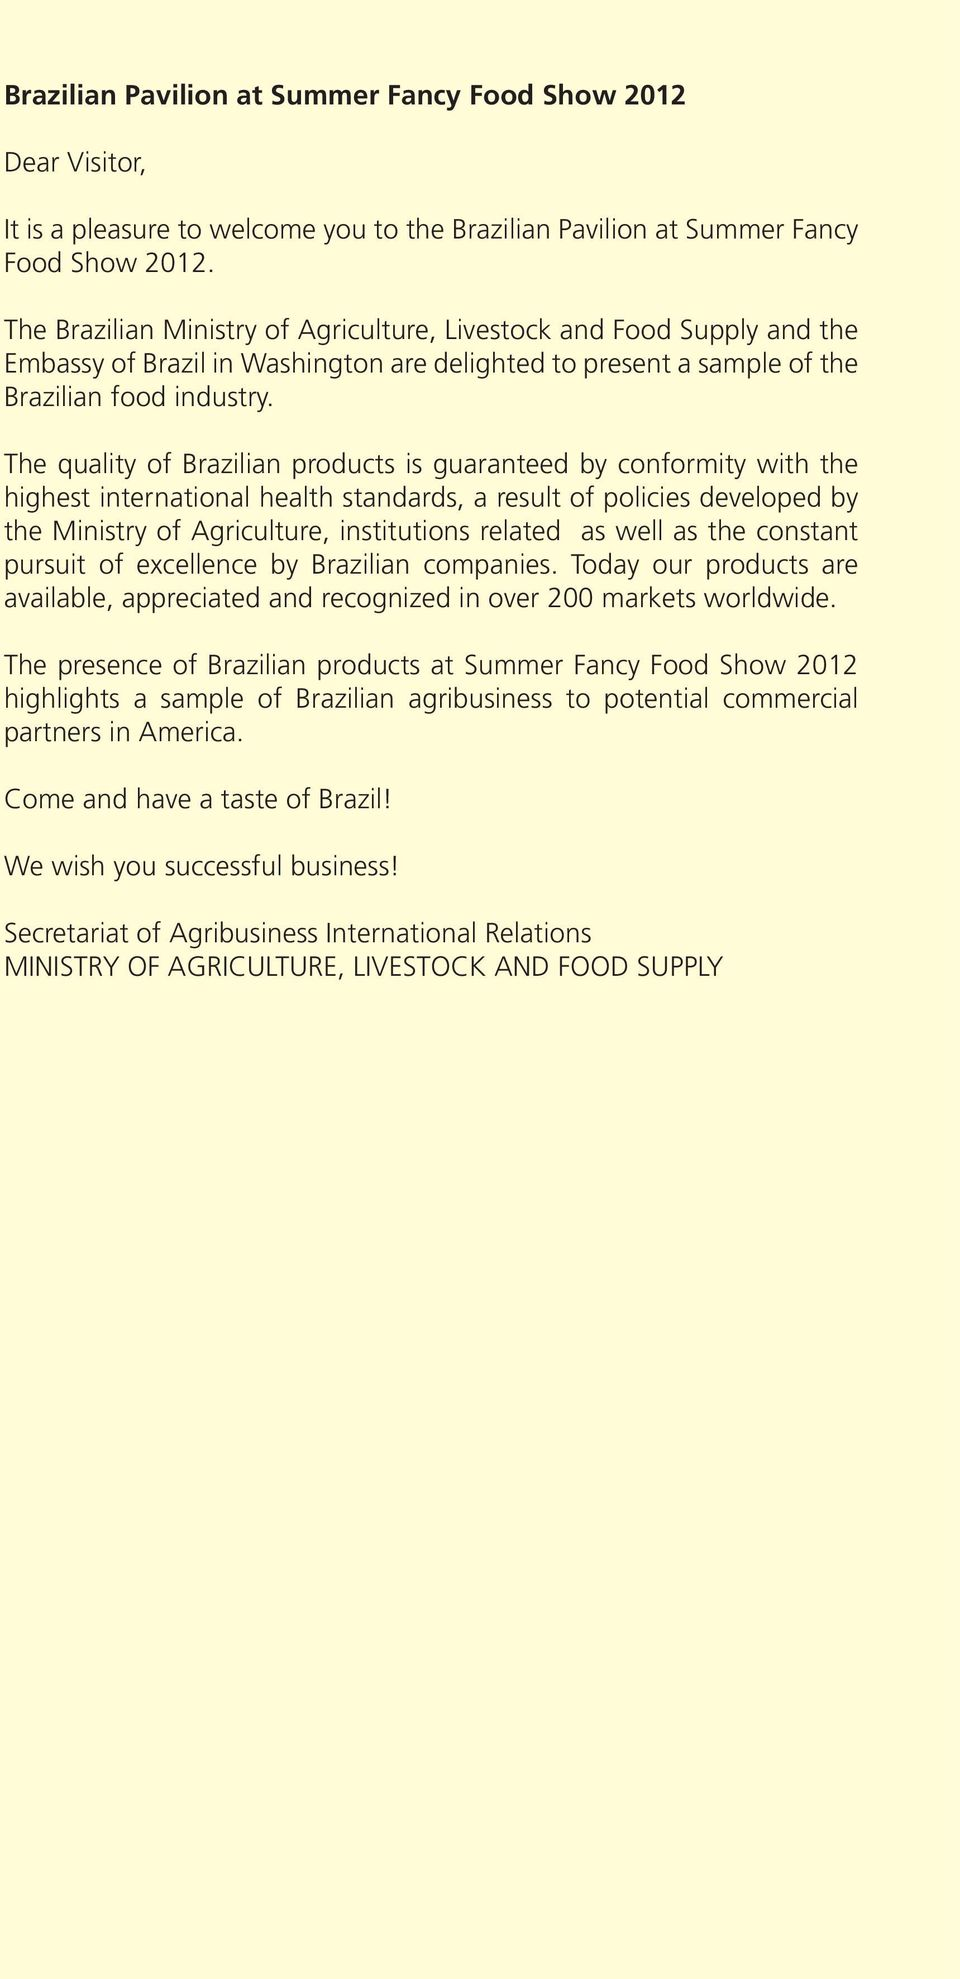 The quality of Brazilian products is guaranteed by conformity with the highest international health standards, a result of policies developed by the Ministry of Agriculture, institutions related as